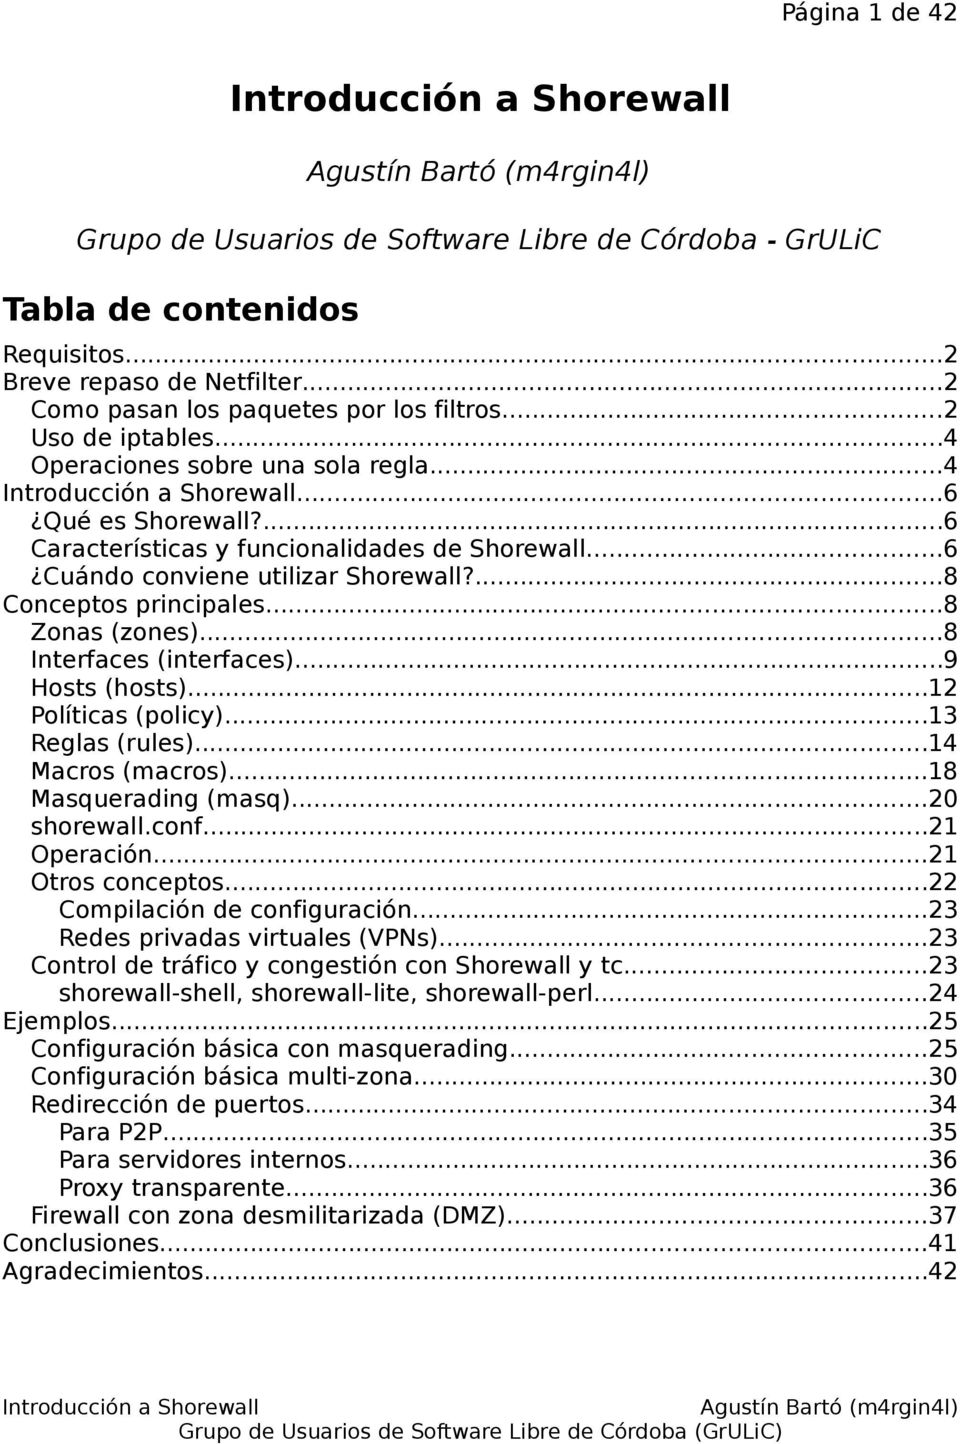 ..8 Interfaces (interfaces)...9 Hosts (hosts)...12 Políticas (policy)...13 Reglas (rules)...14 Macros (macros)...18 Masquerading (masq)...20 shorewall.conf...21 Operación...21 Otros conceptos.